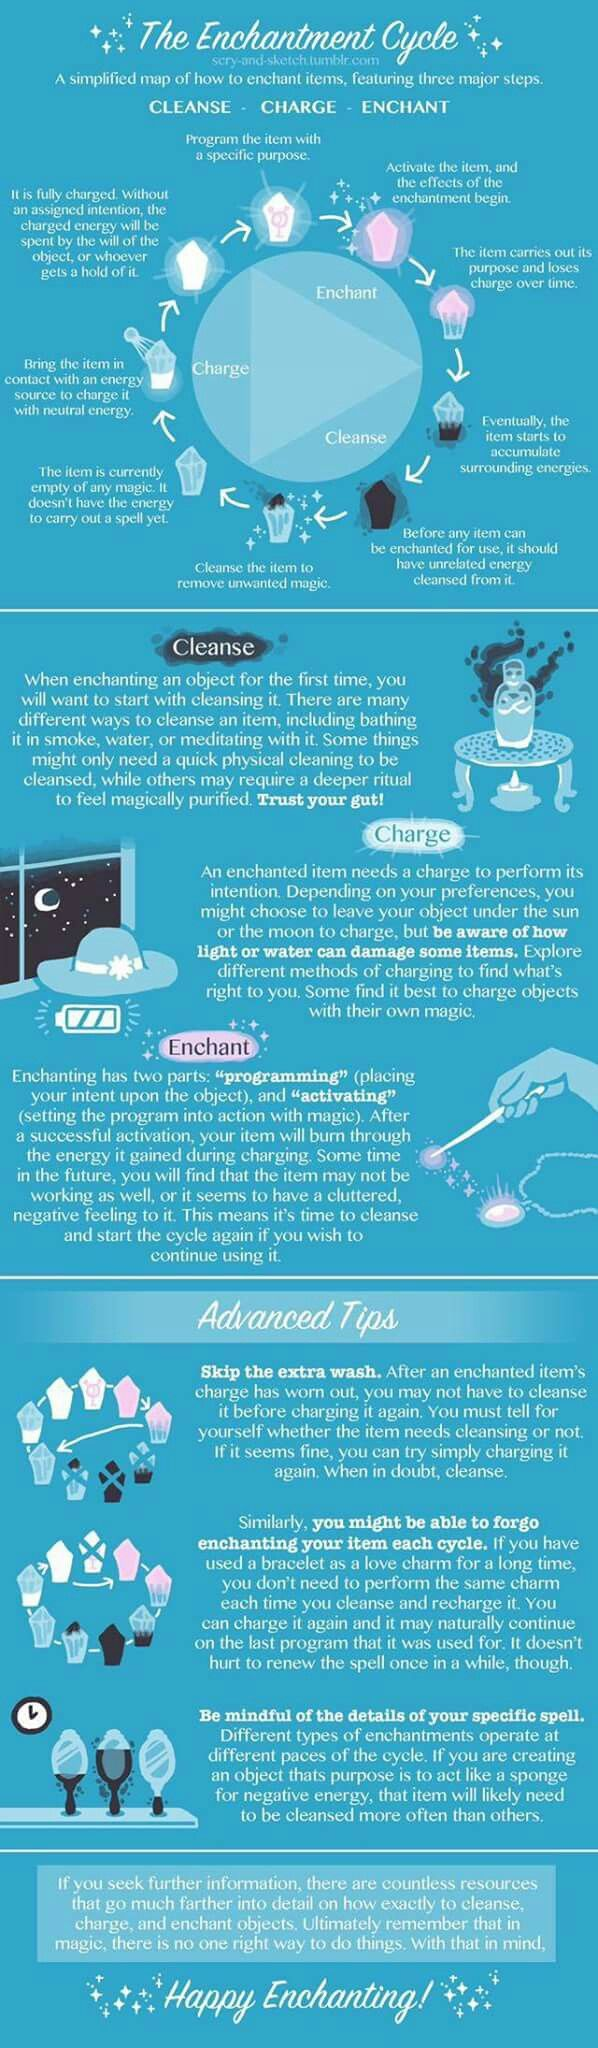 59 best Guides images on Pinterest | Spirituality, Witch craft and ...